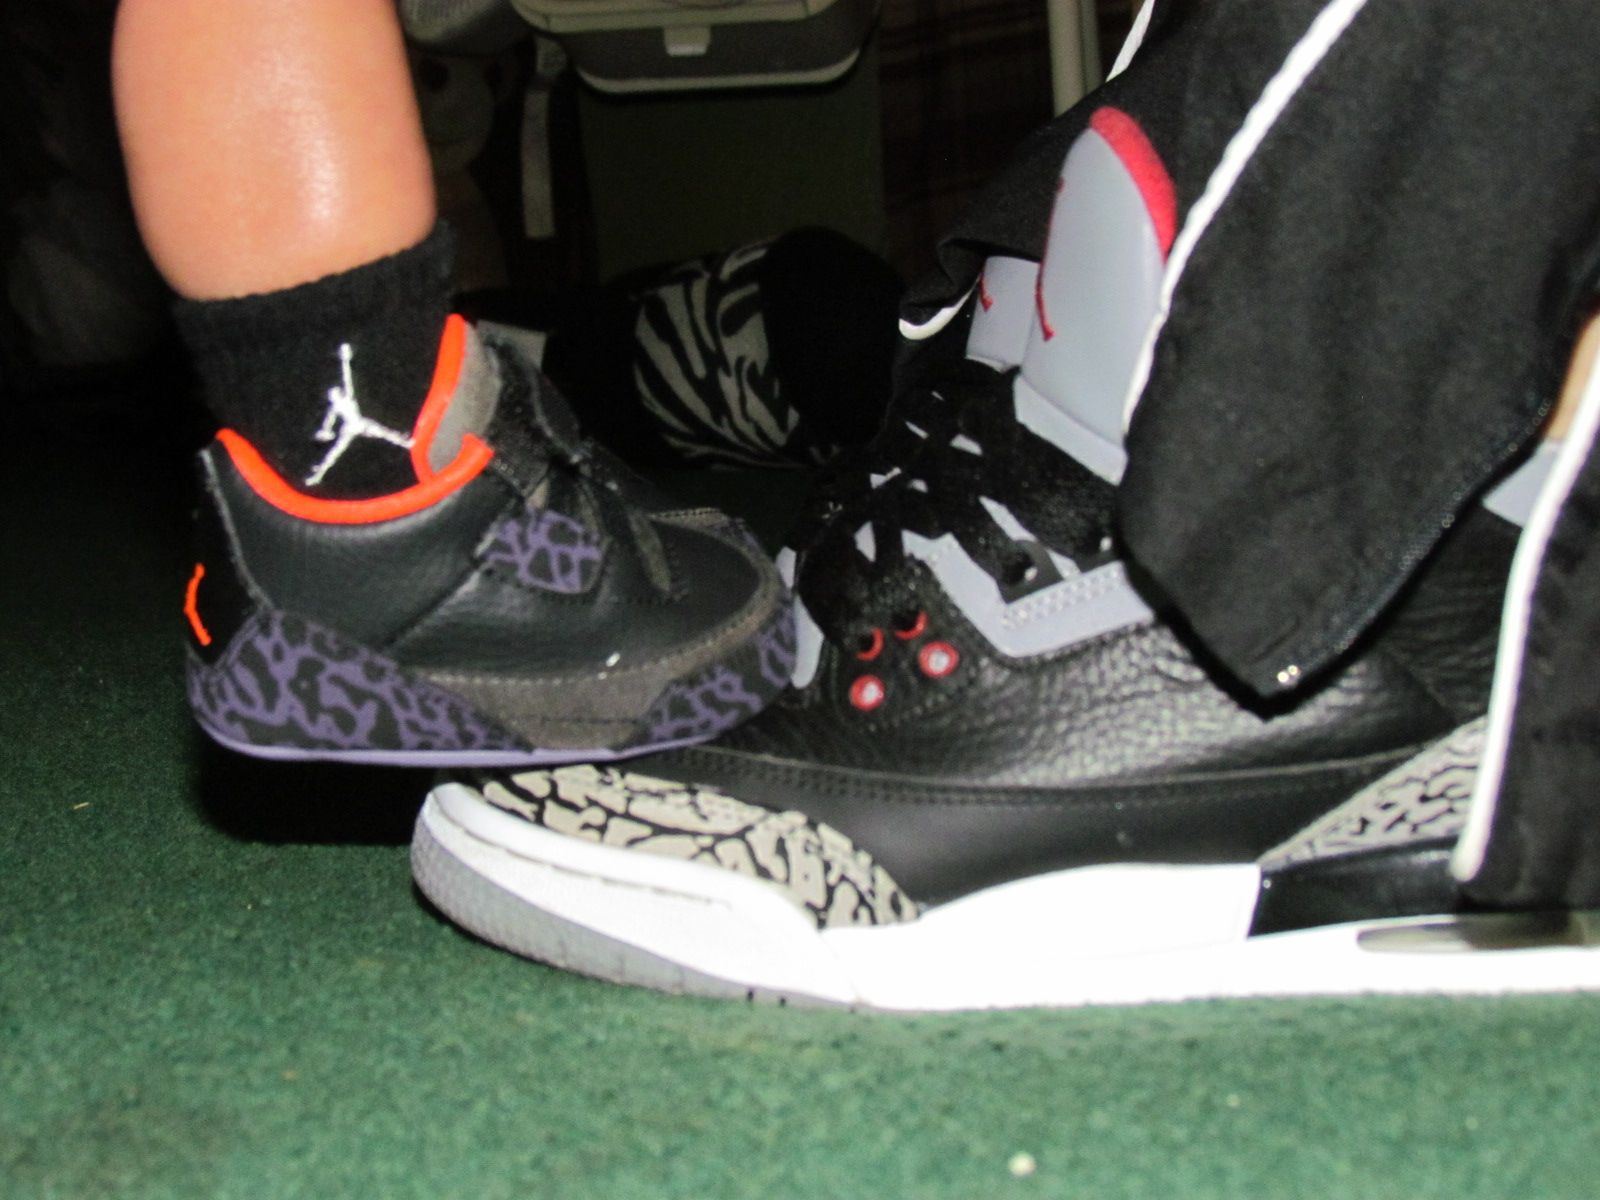 69178849aae My son and I matching ! Baby jordans retro 3 black cement 3s, matching  jordans mommys boy!